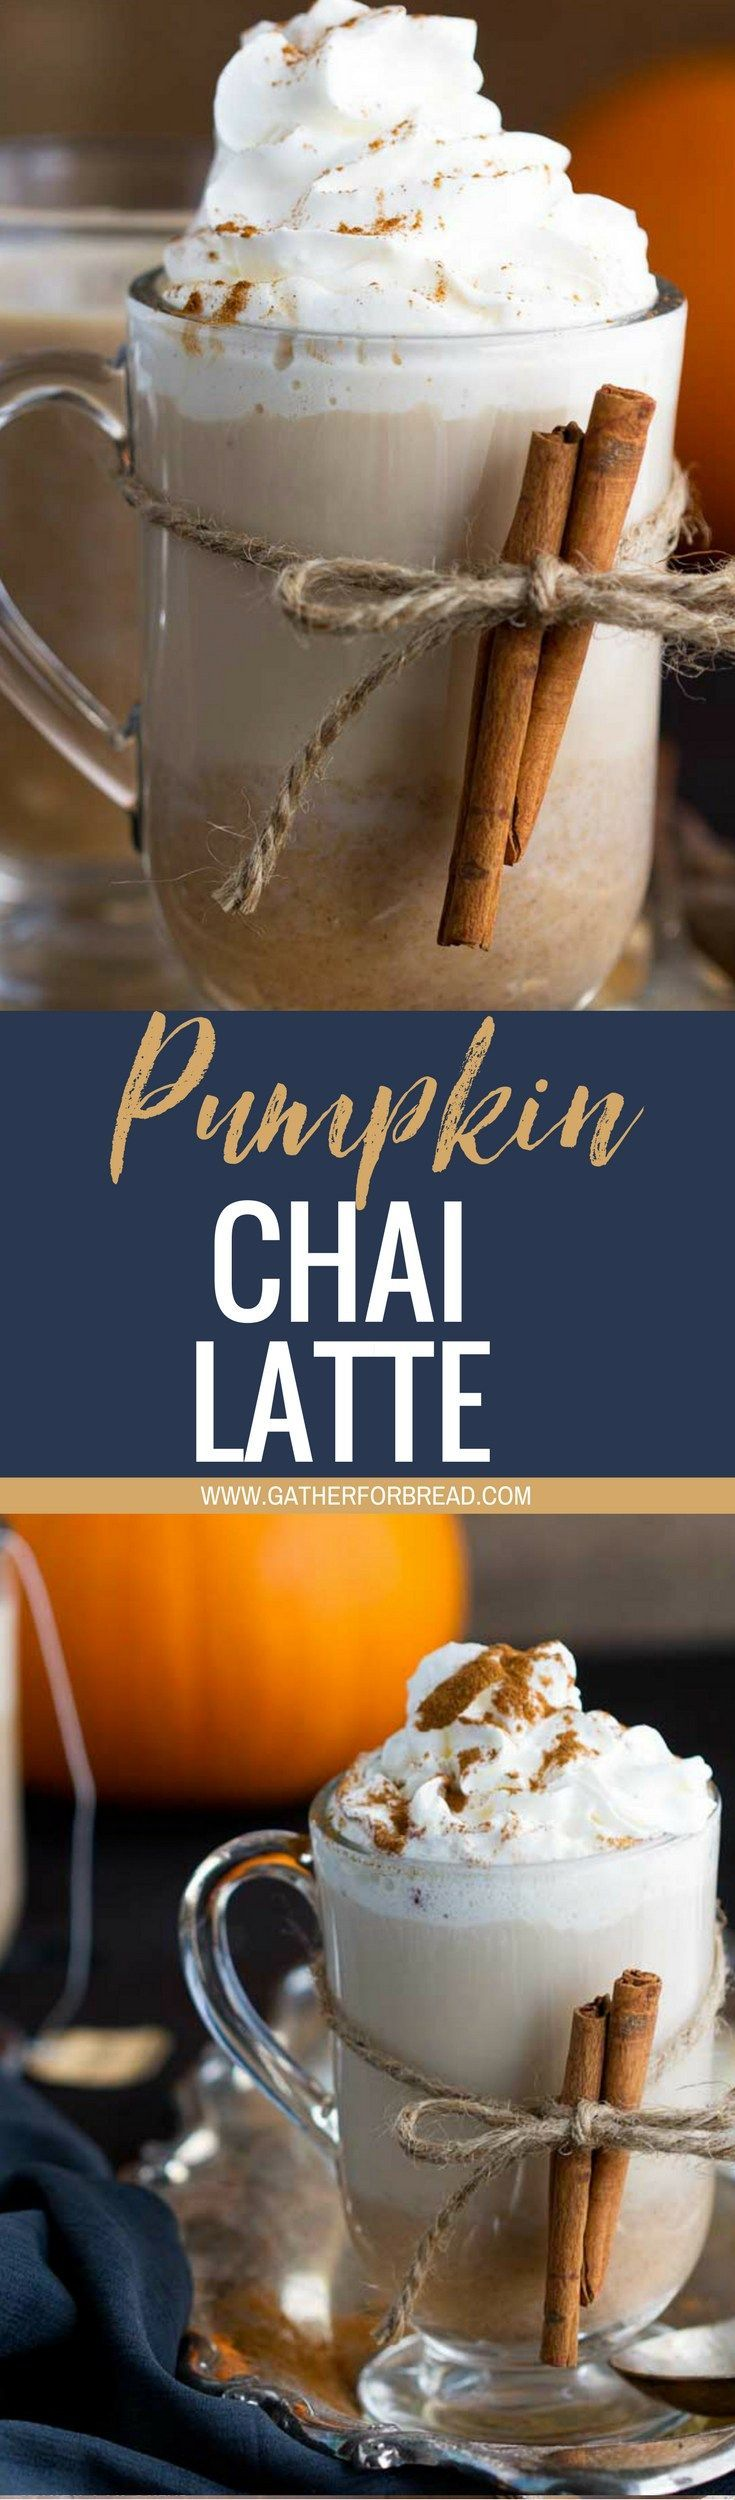 Pumpkin Chai Latte - Seasonal favorite. Homemade chai latte made with real pumpkin, chai concentrate, and some cinnamon, spice and vanilla for a pure cozy diy fall treat.